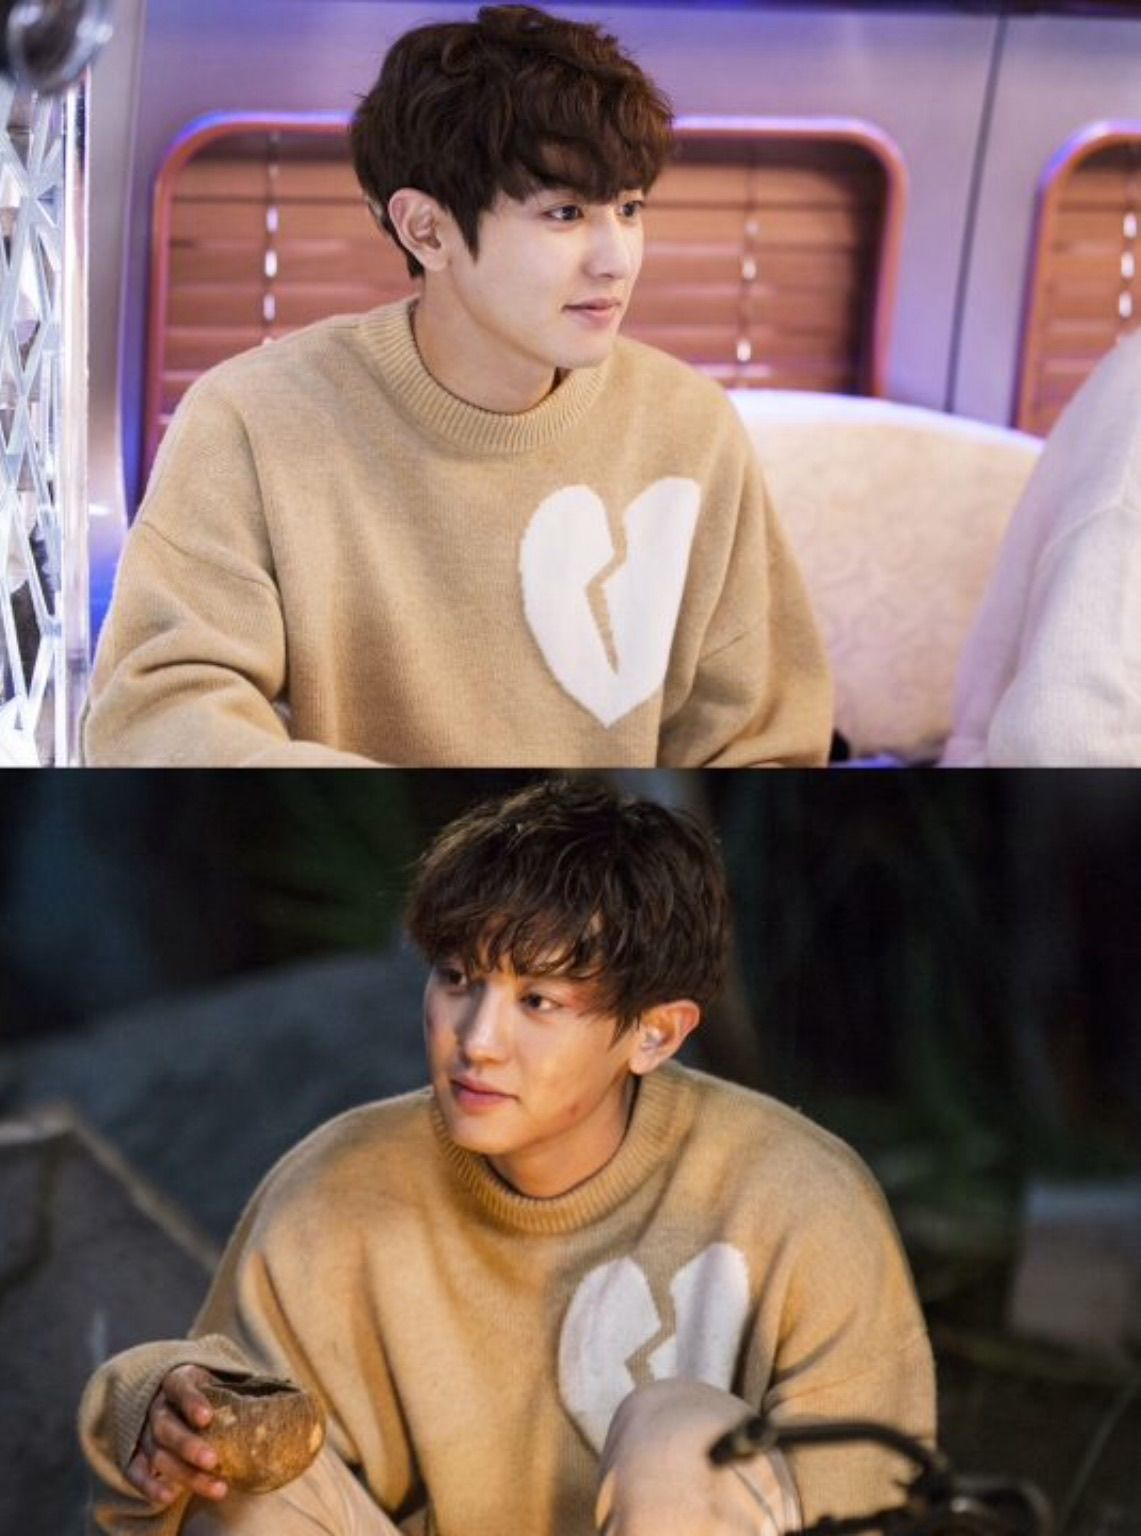 EXO Chanyeol ~ missing 9